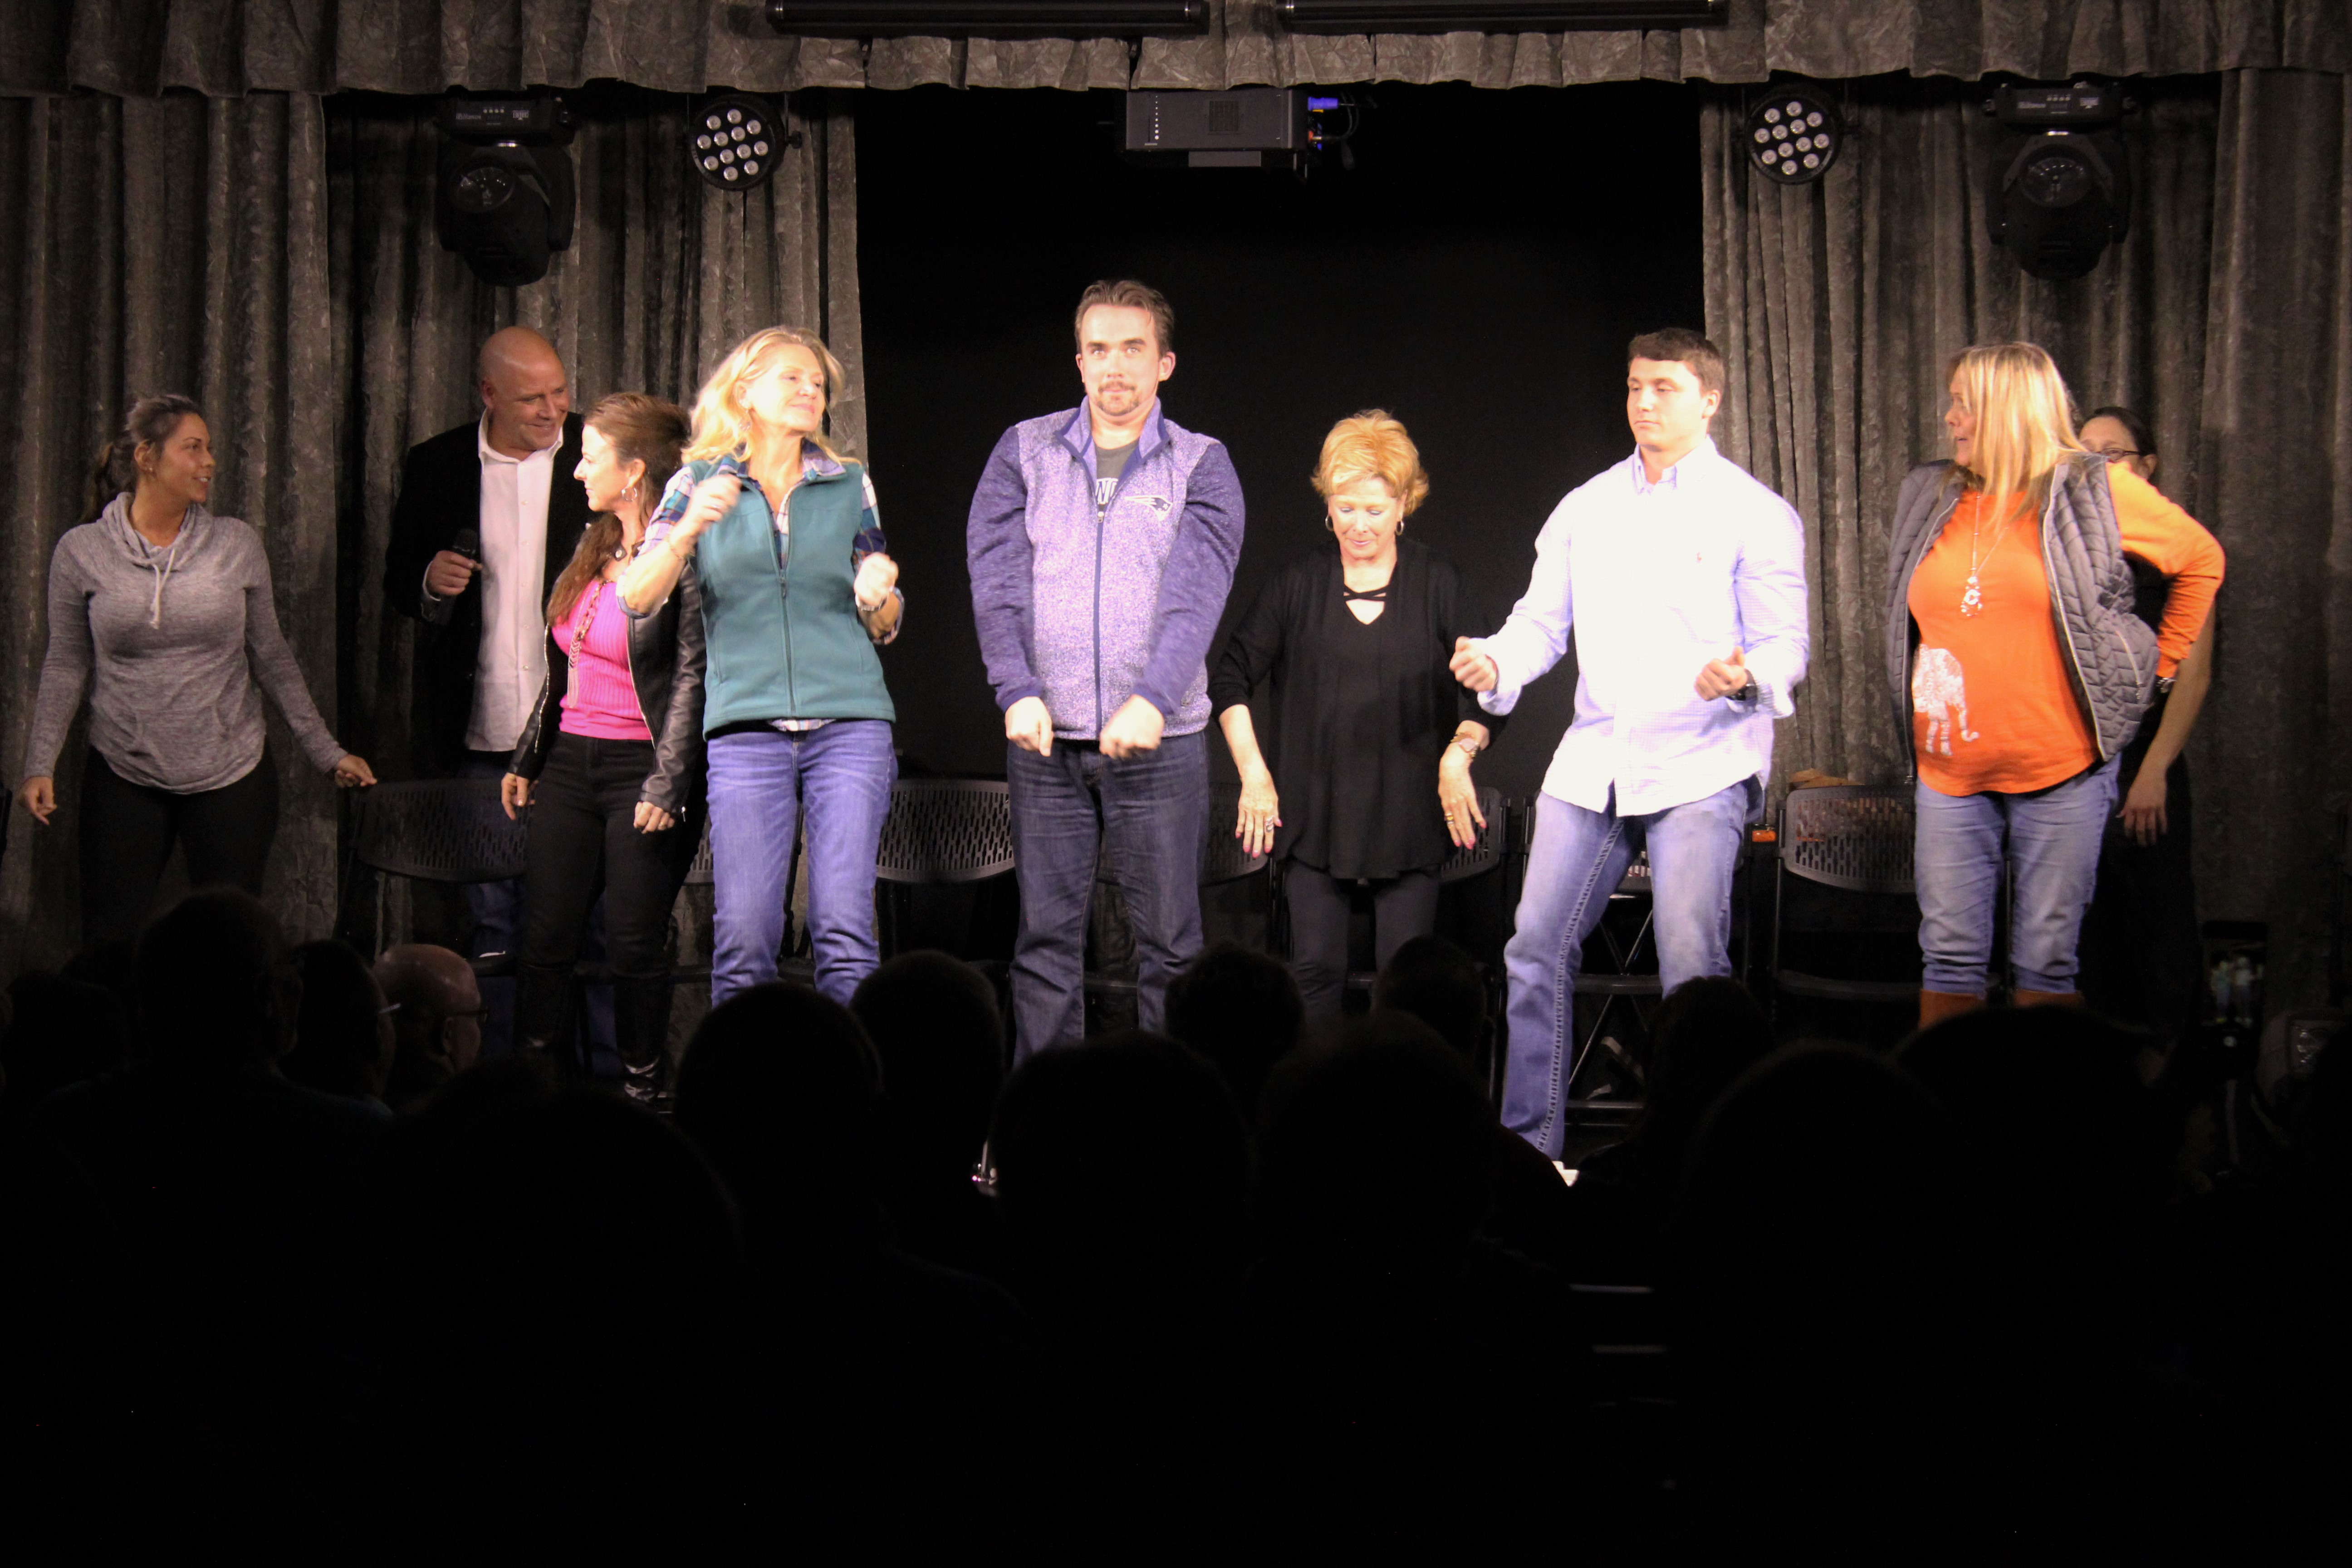 Stoked Comedy Hypnosis Show For All-Ages